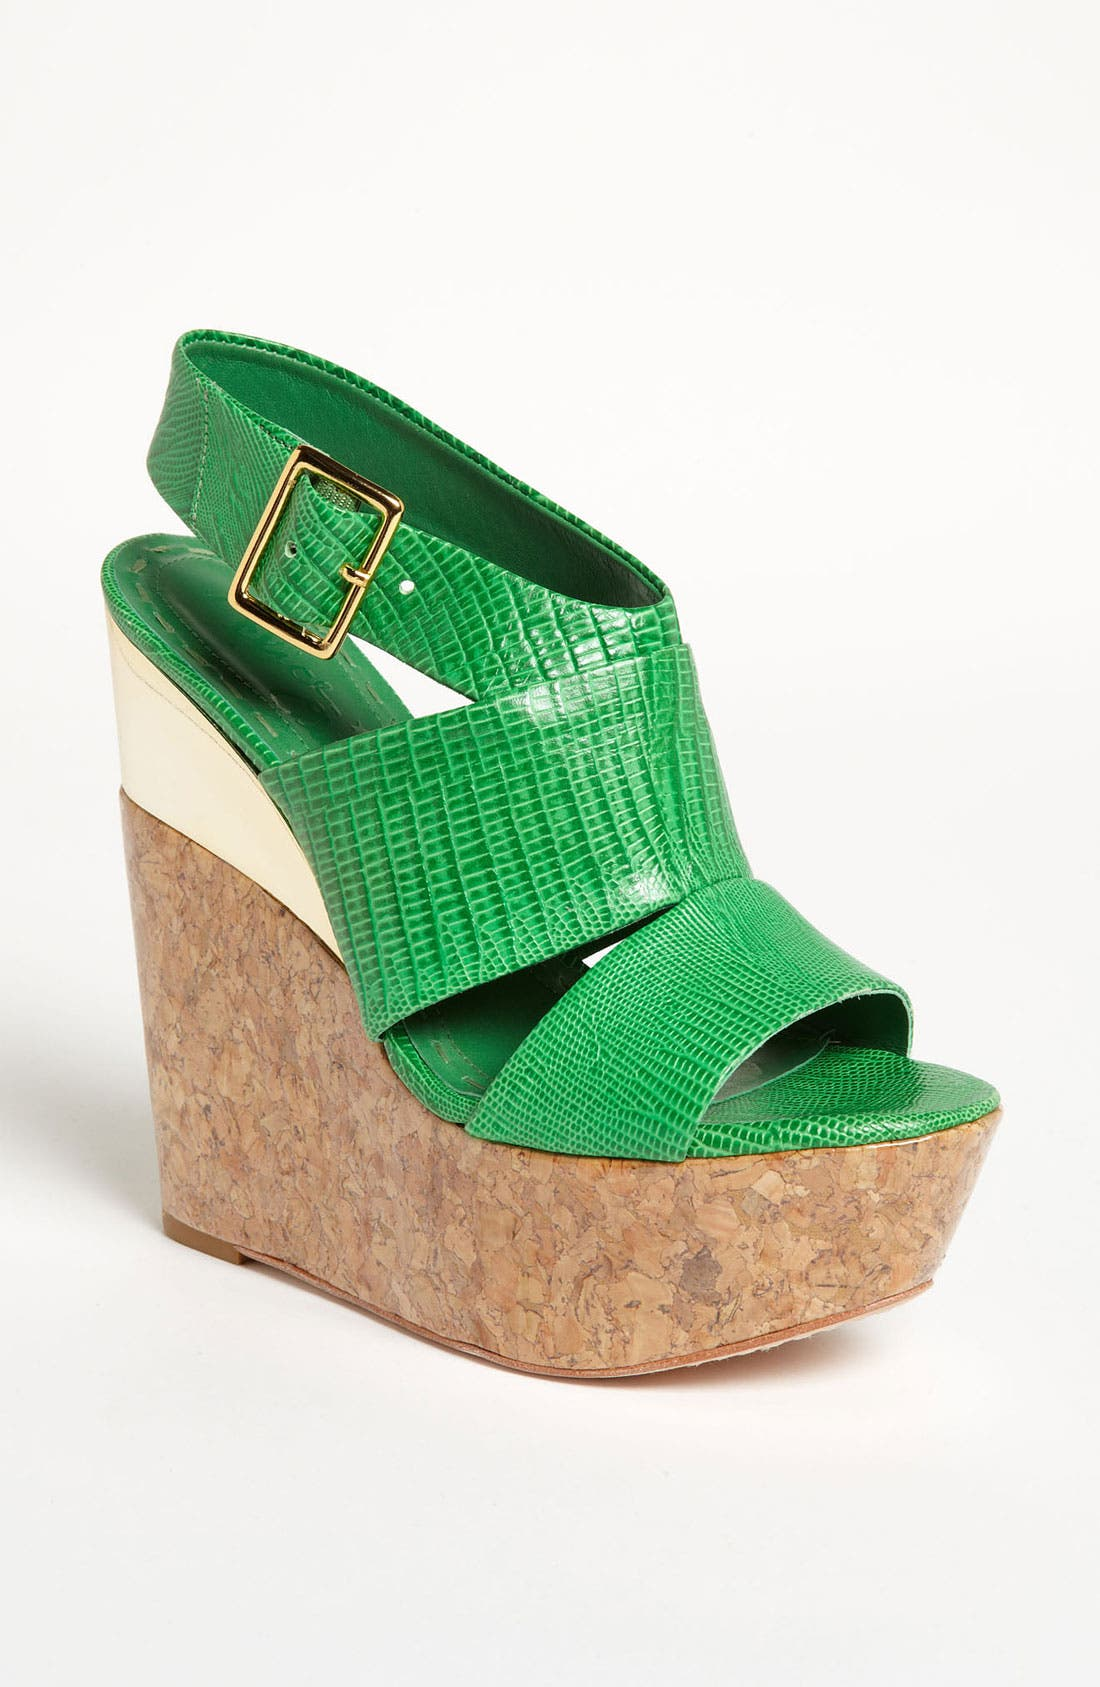 Main Image - Alice + Olivia 'Steffie' Wedge